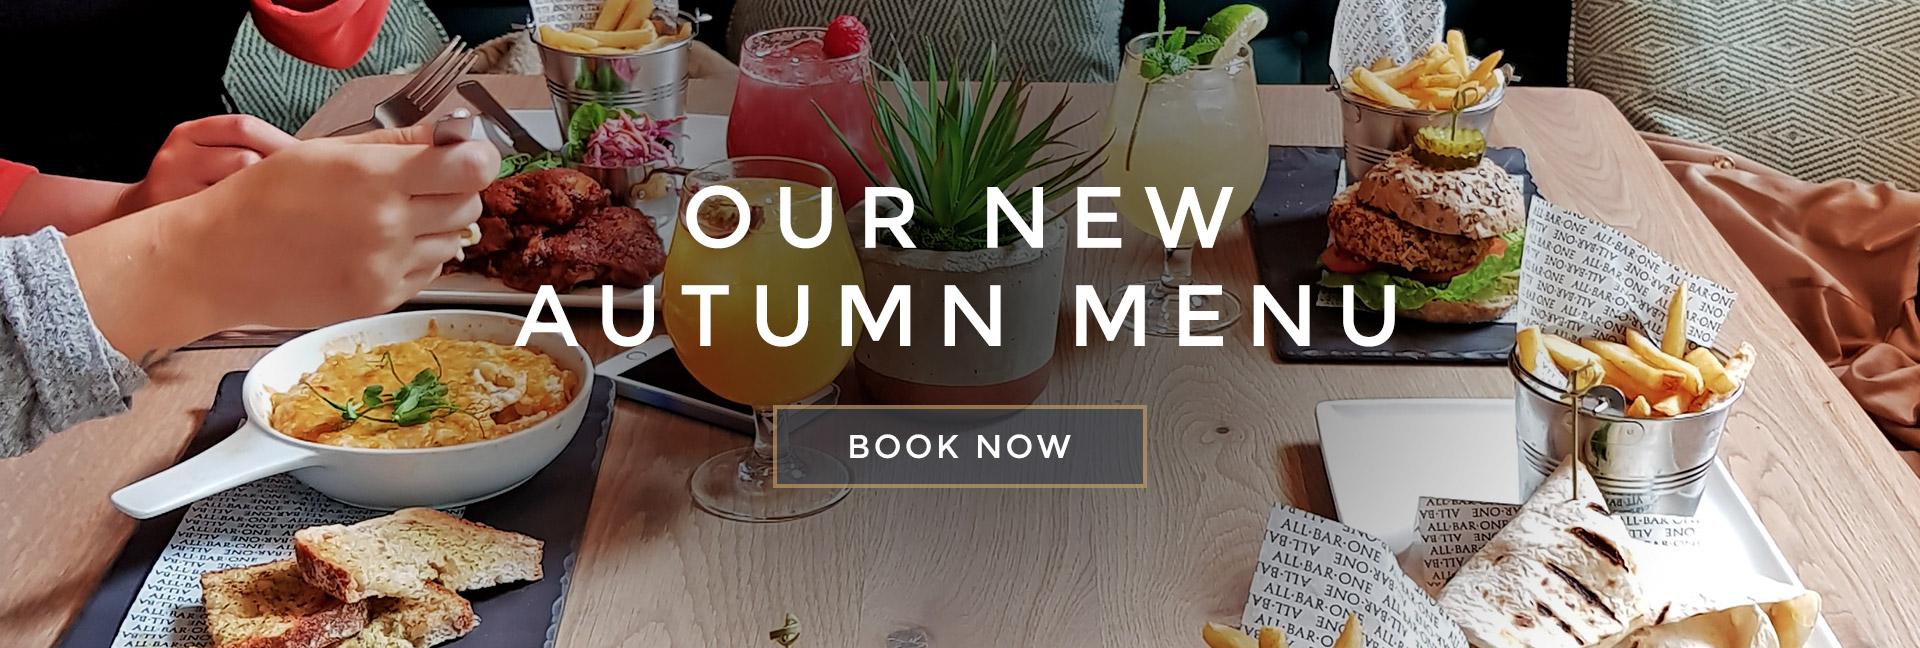 Our new Autumn menu at All Bar One Stratford Upon Avon - Book now